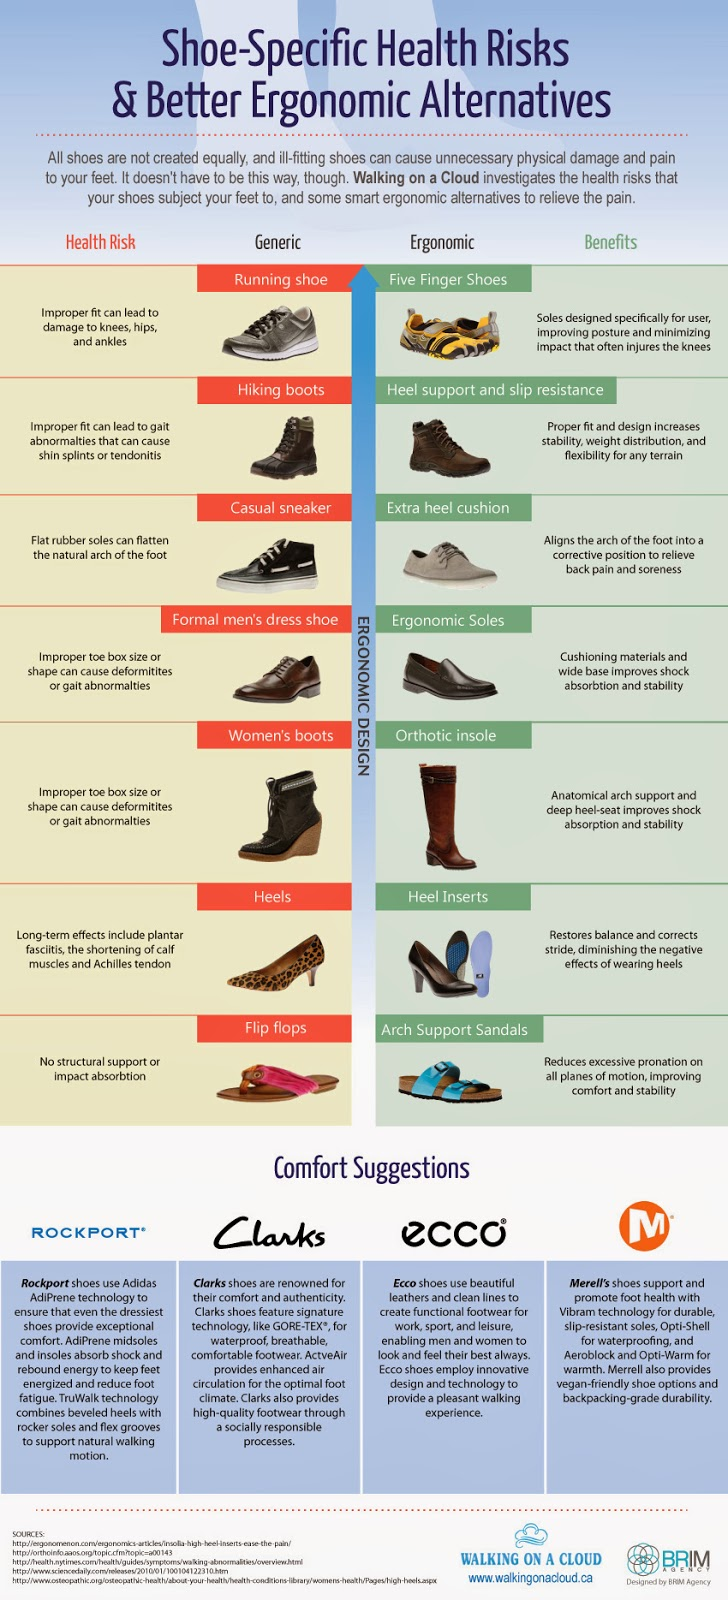 Shoe-Specific Health Risks and Better Ergonomic Alternatives